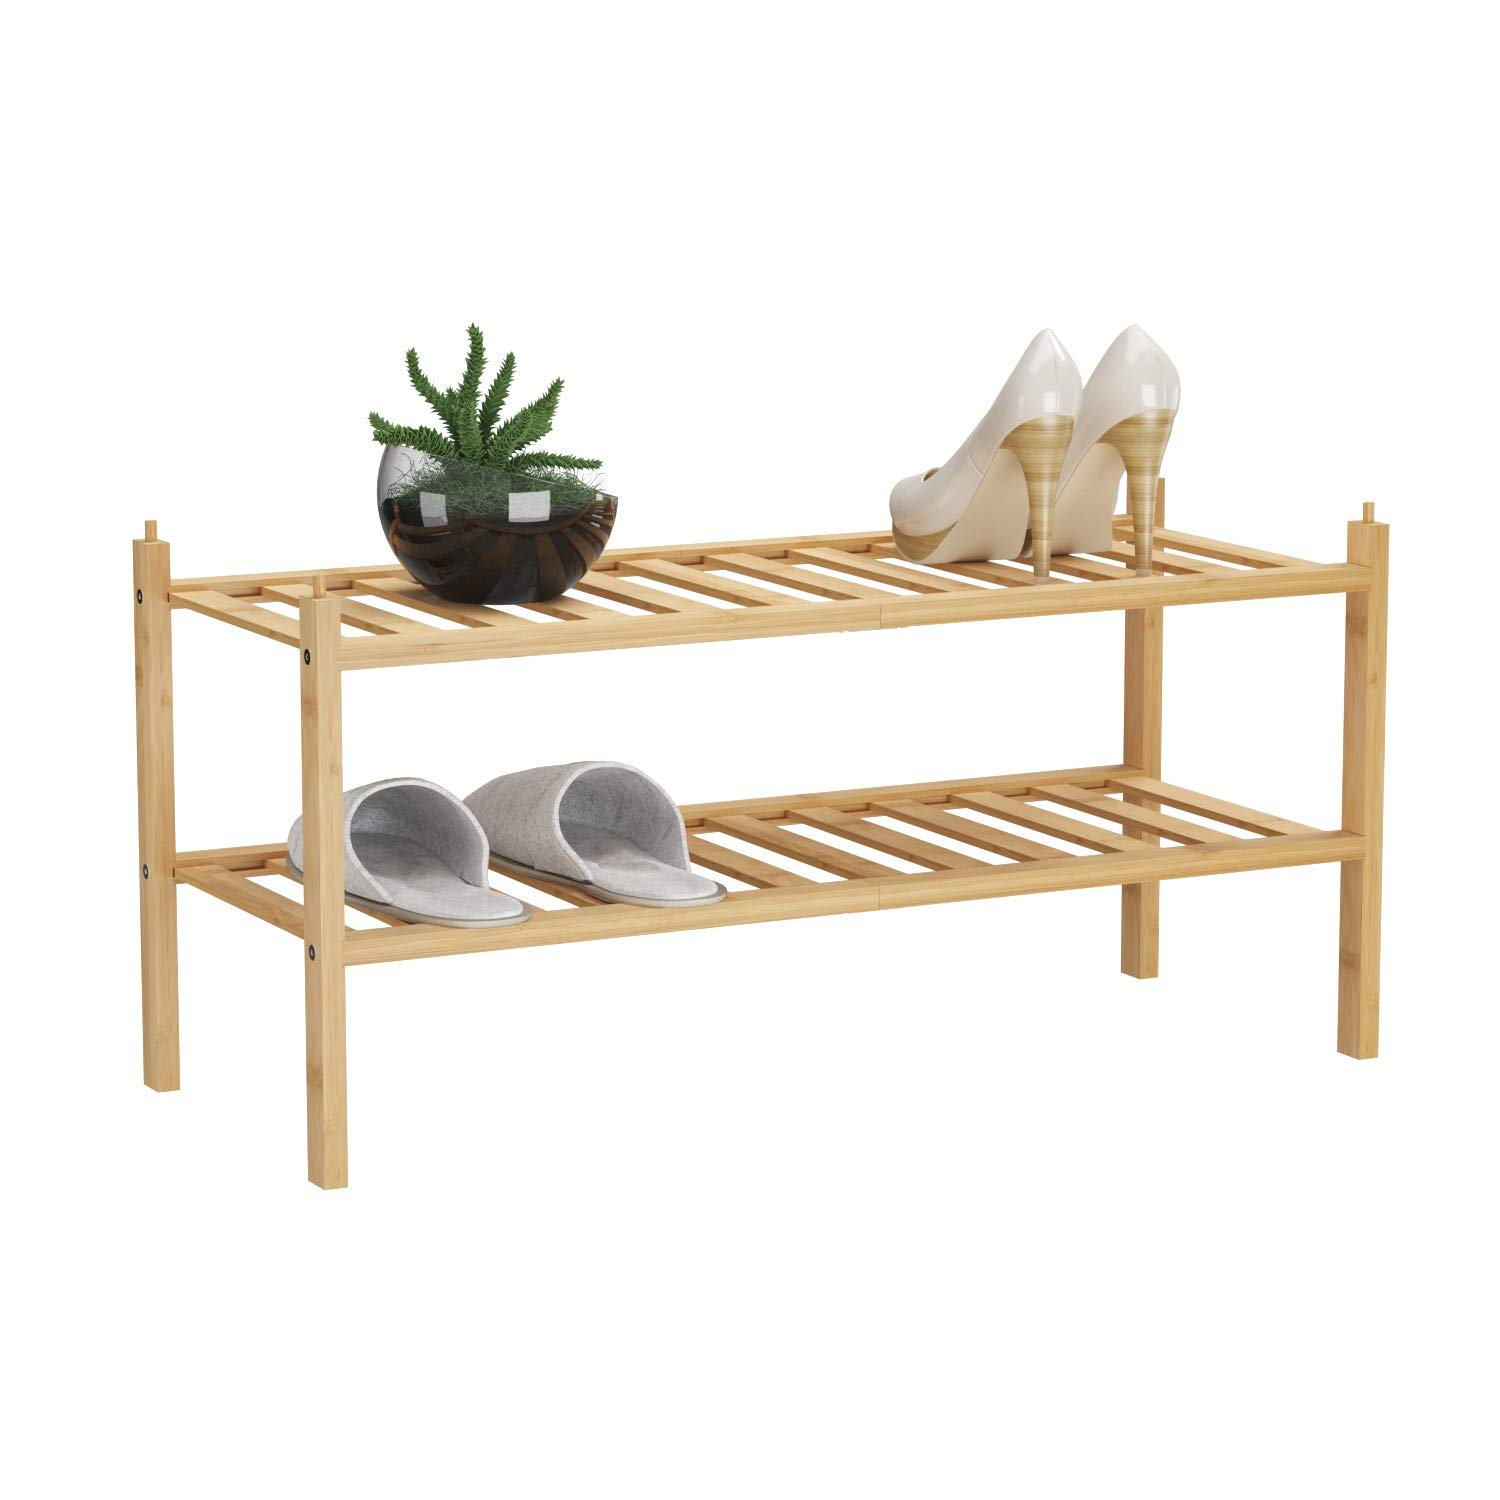 BAMFOX 2-Tier Shoe Rack,Bamboo Stackable Shoe Storage Organizer Unit Entryway Shelf,27.2''x11''x13.2'' in Natural Color by BAMFOX